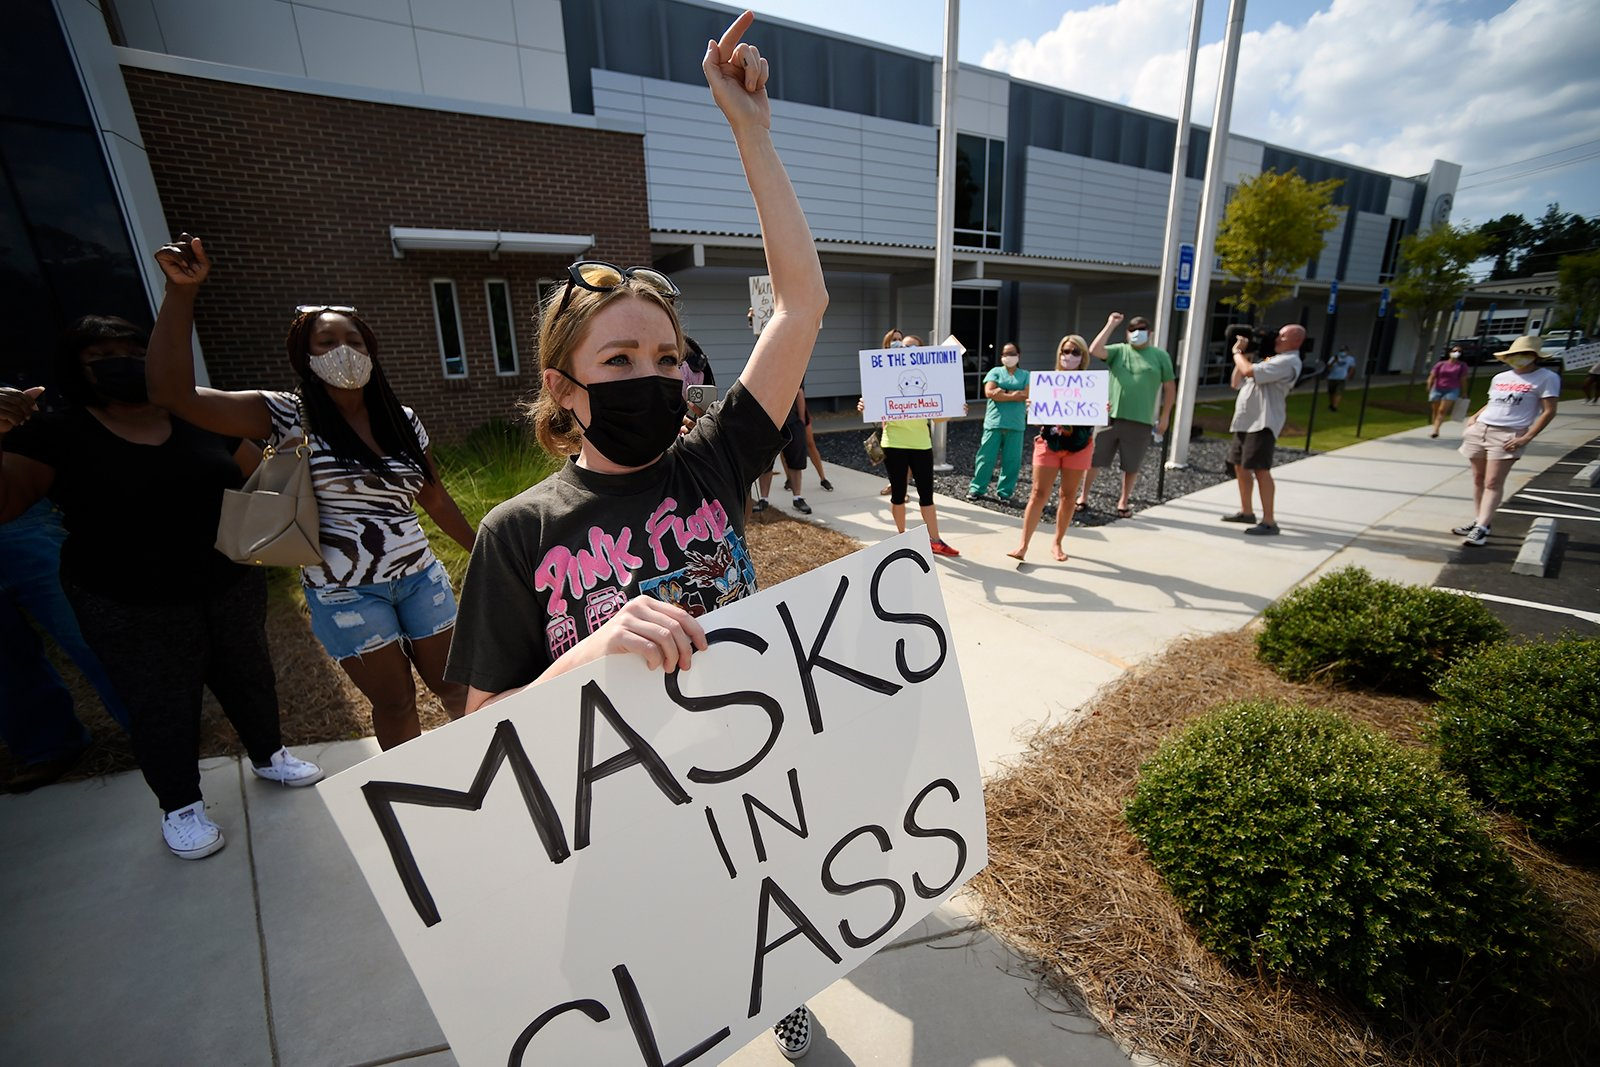 Pro-mask wearing demonstrators stage a protest at the Cobb County School Board Headquarters, Thursday, Aug. 12, 2021, in Marietta, Ga. Many school districts nationwide have seen parents protesting for and against masks. (AP Photo/Mike Stewart)